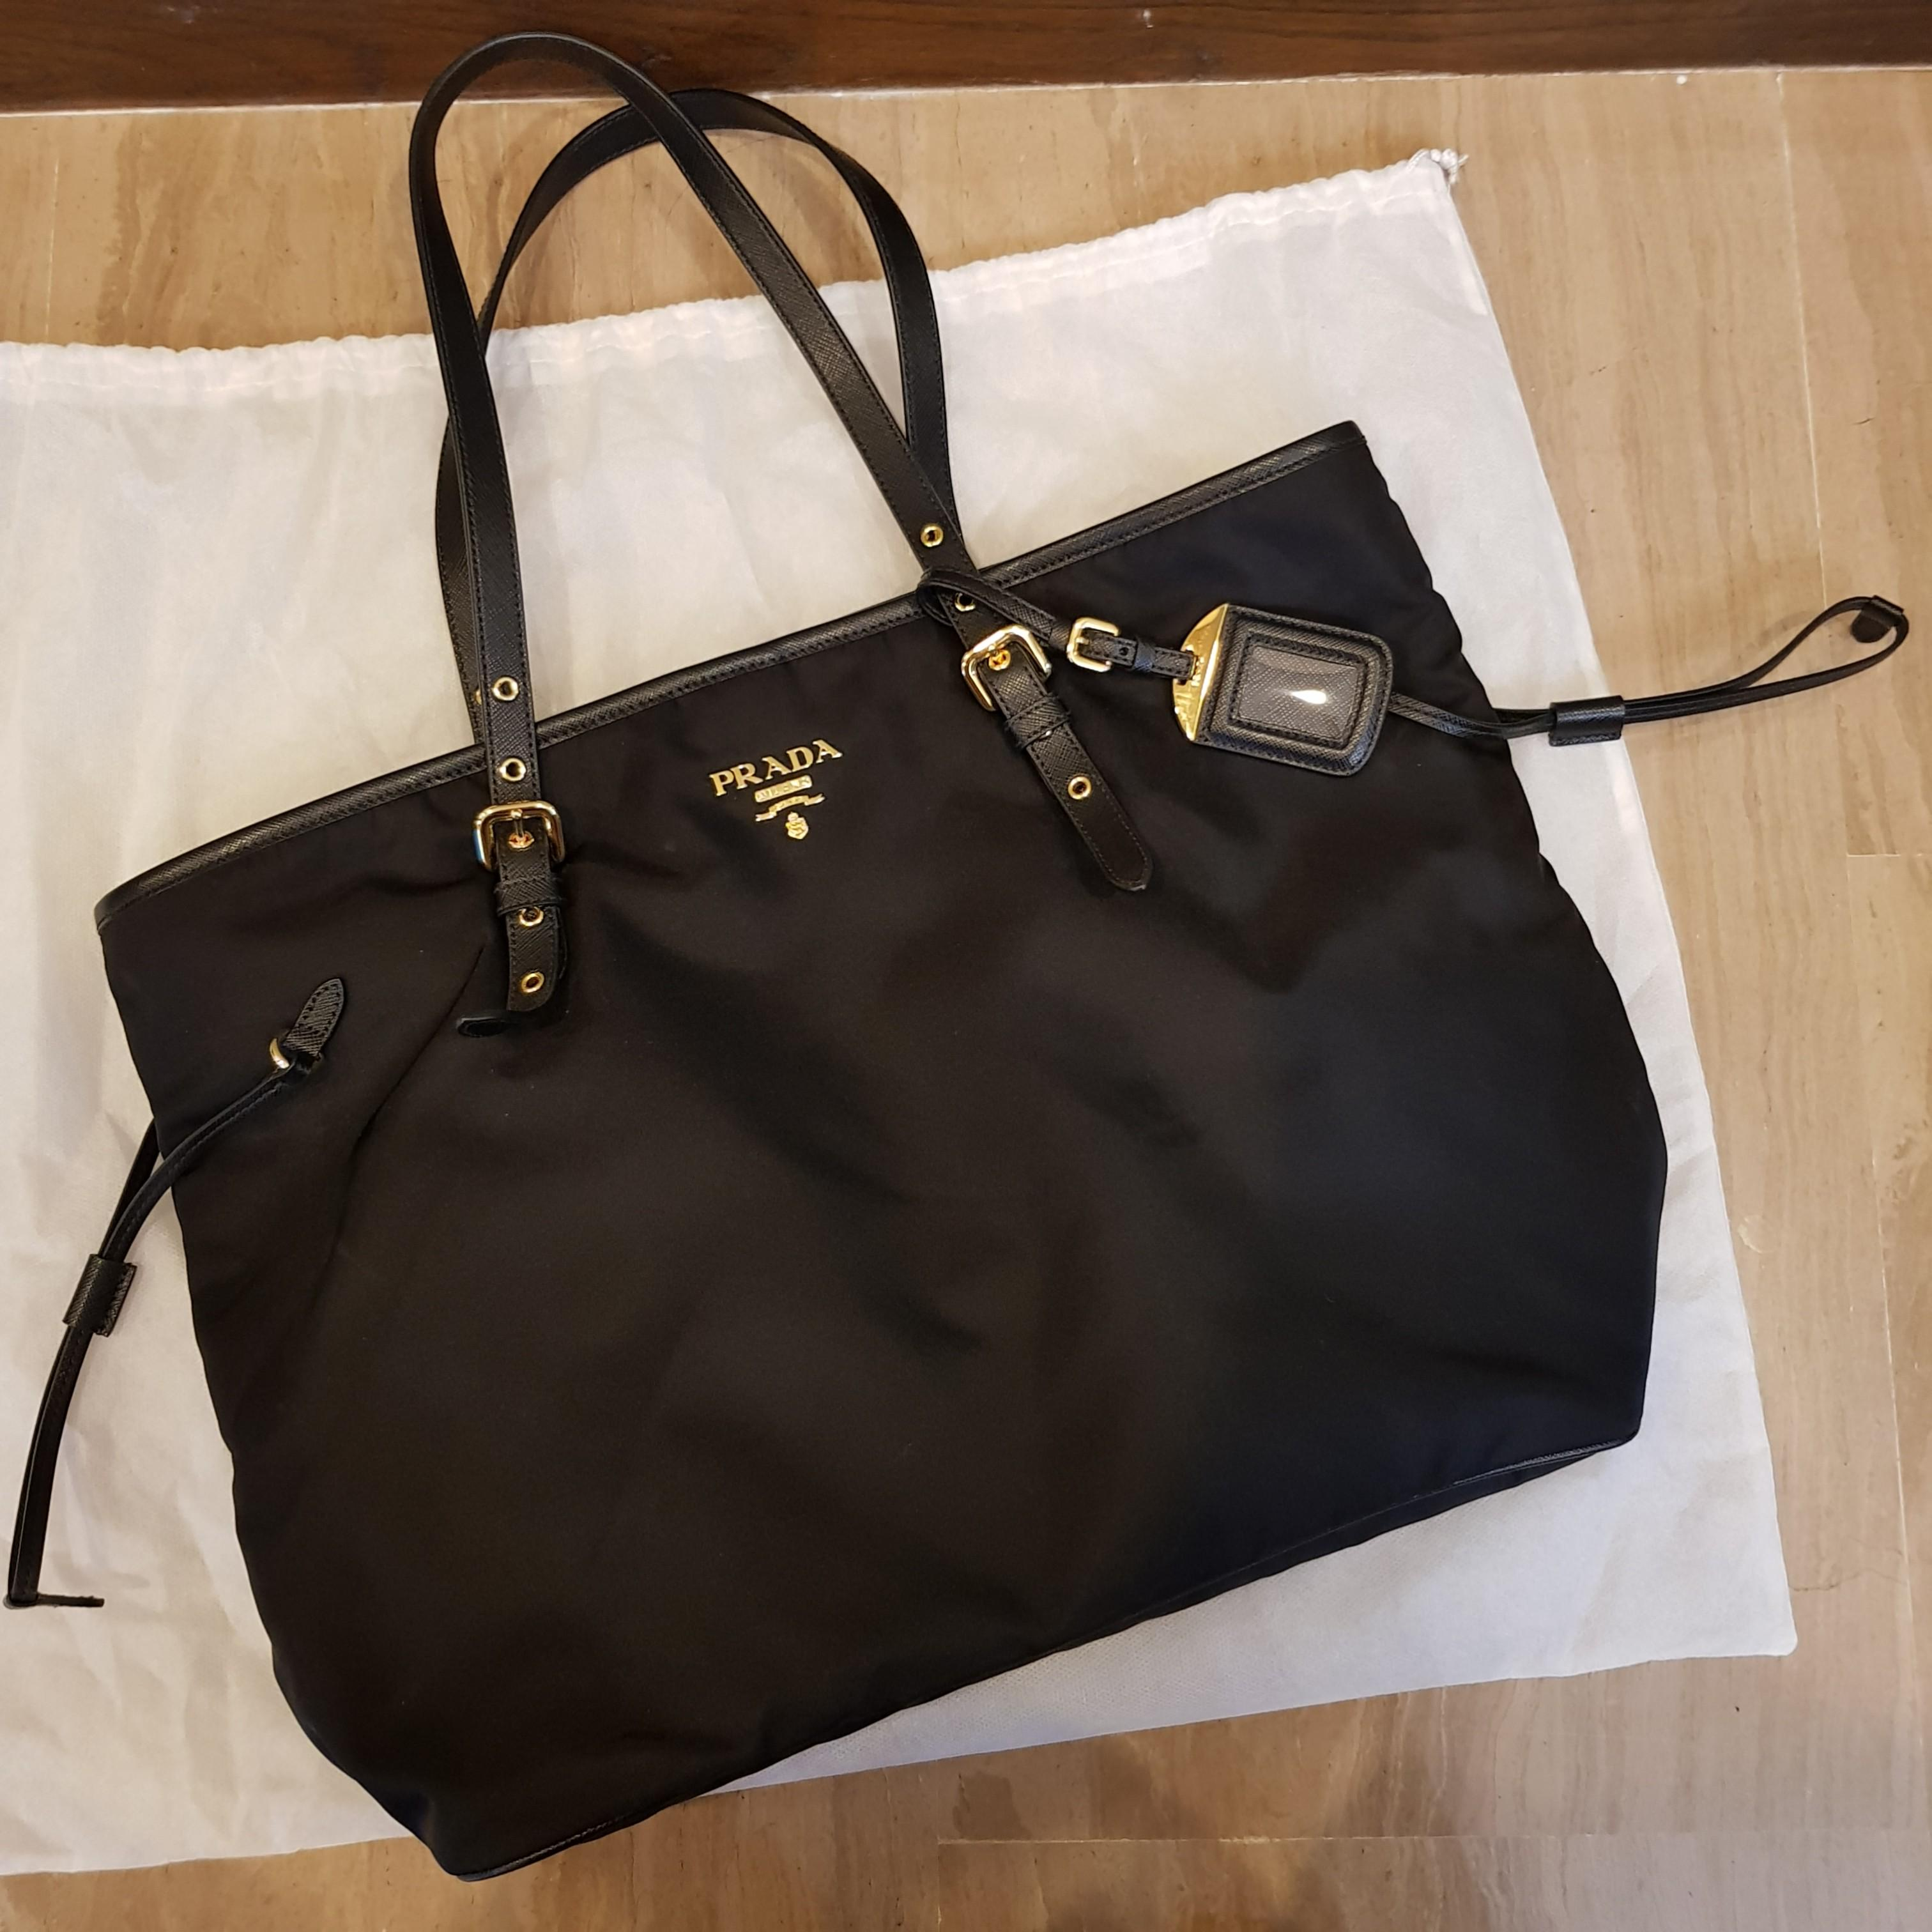 Prada Tote Bag Black Canvas with Leather Trimming